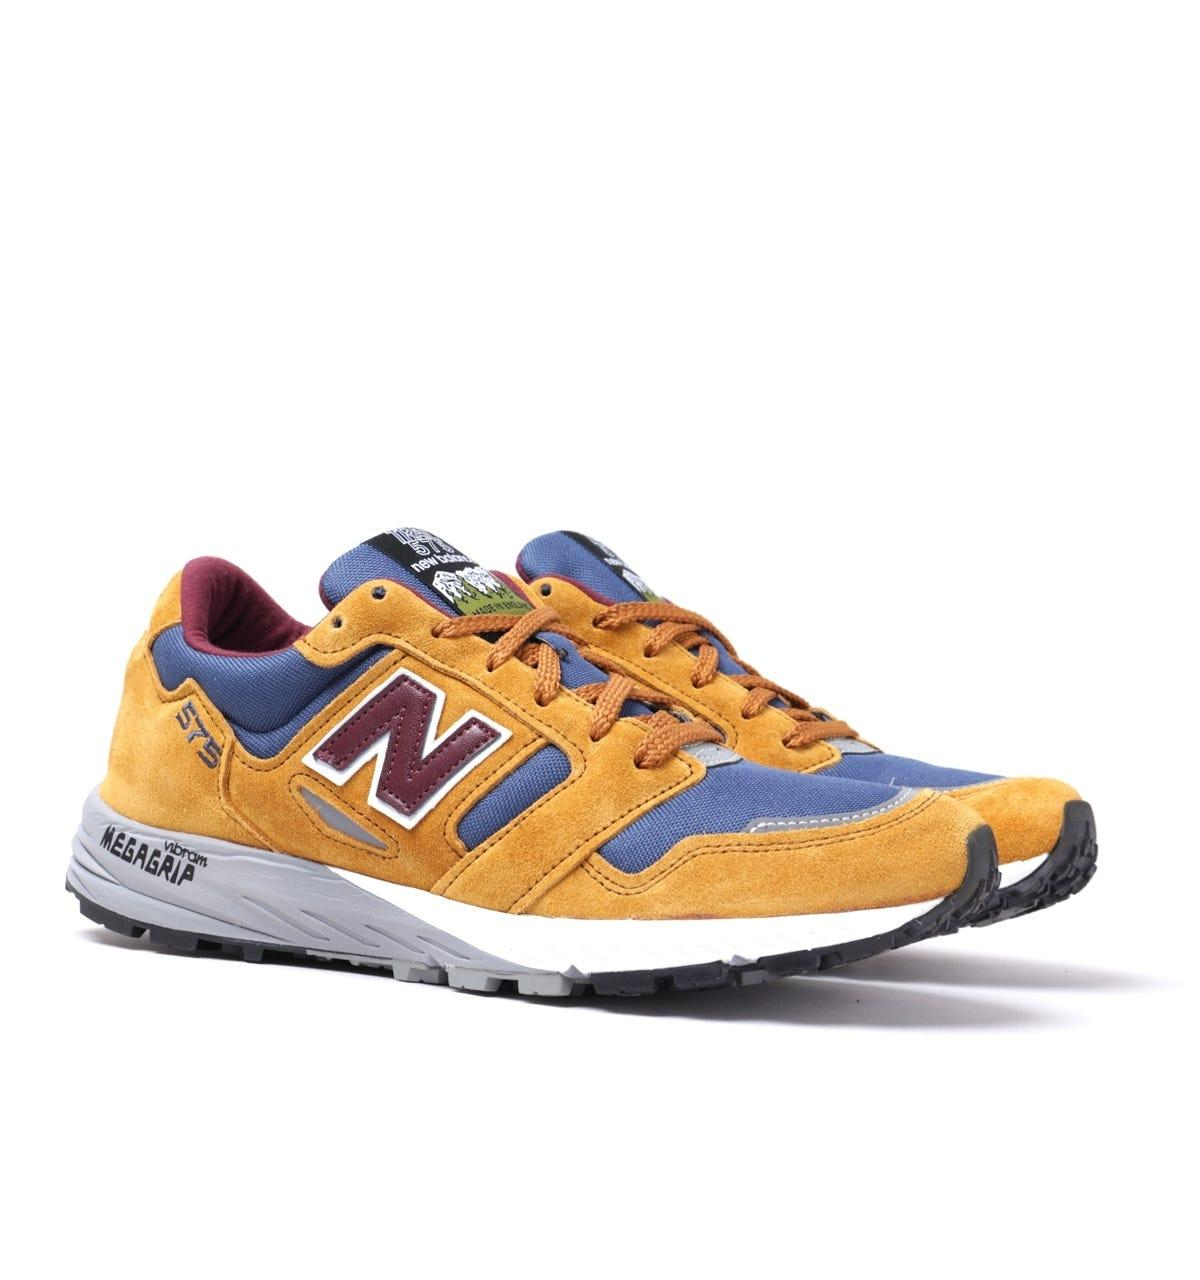 New Balance Trail 575 Suede Mustard & Blue Mesh Trainers for Men ...